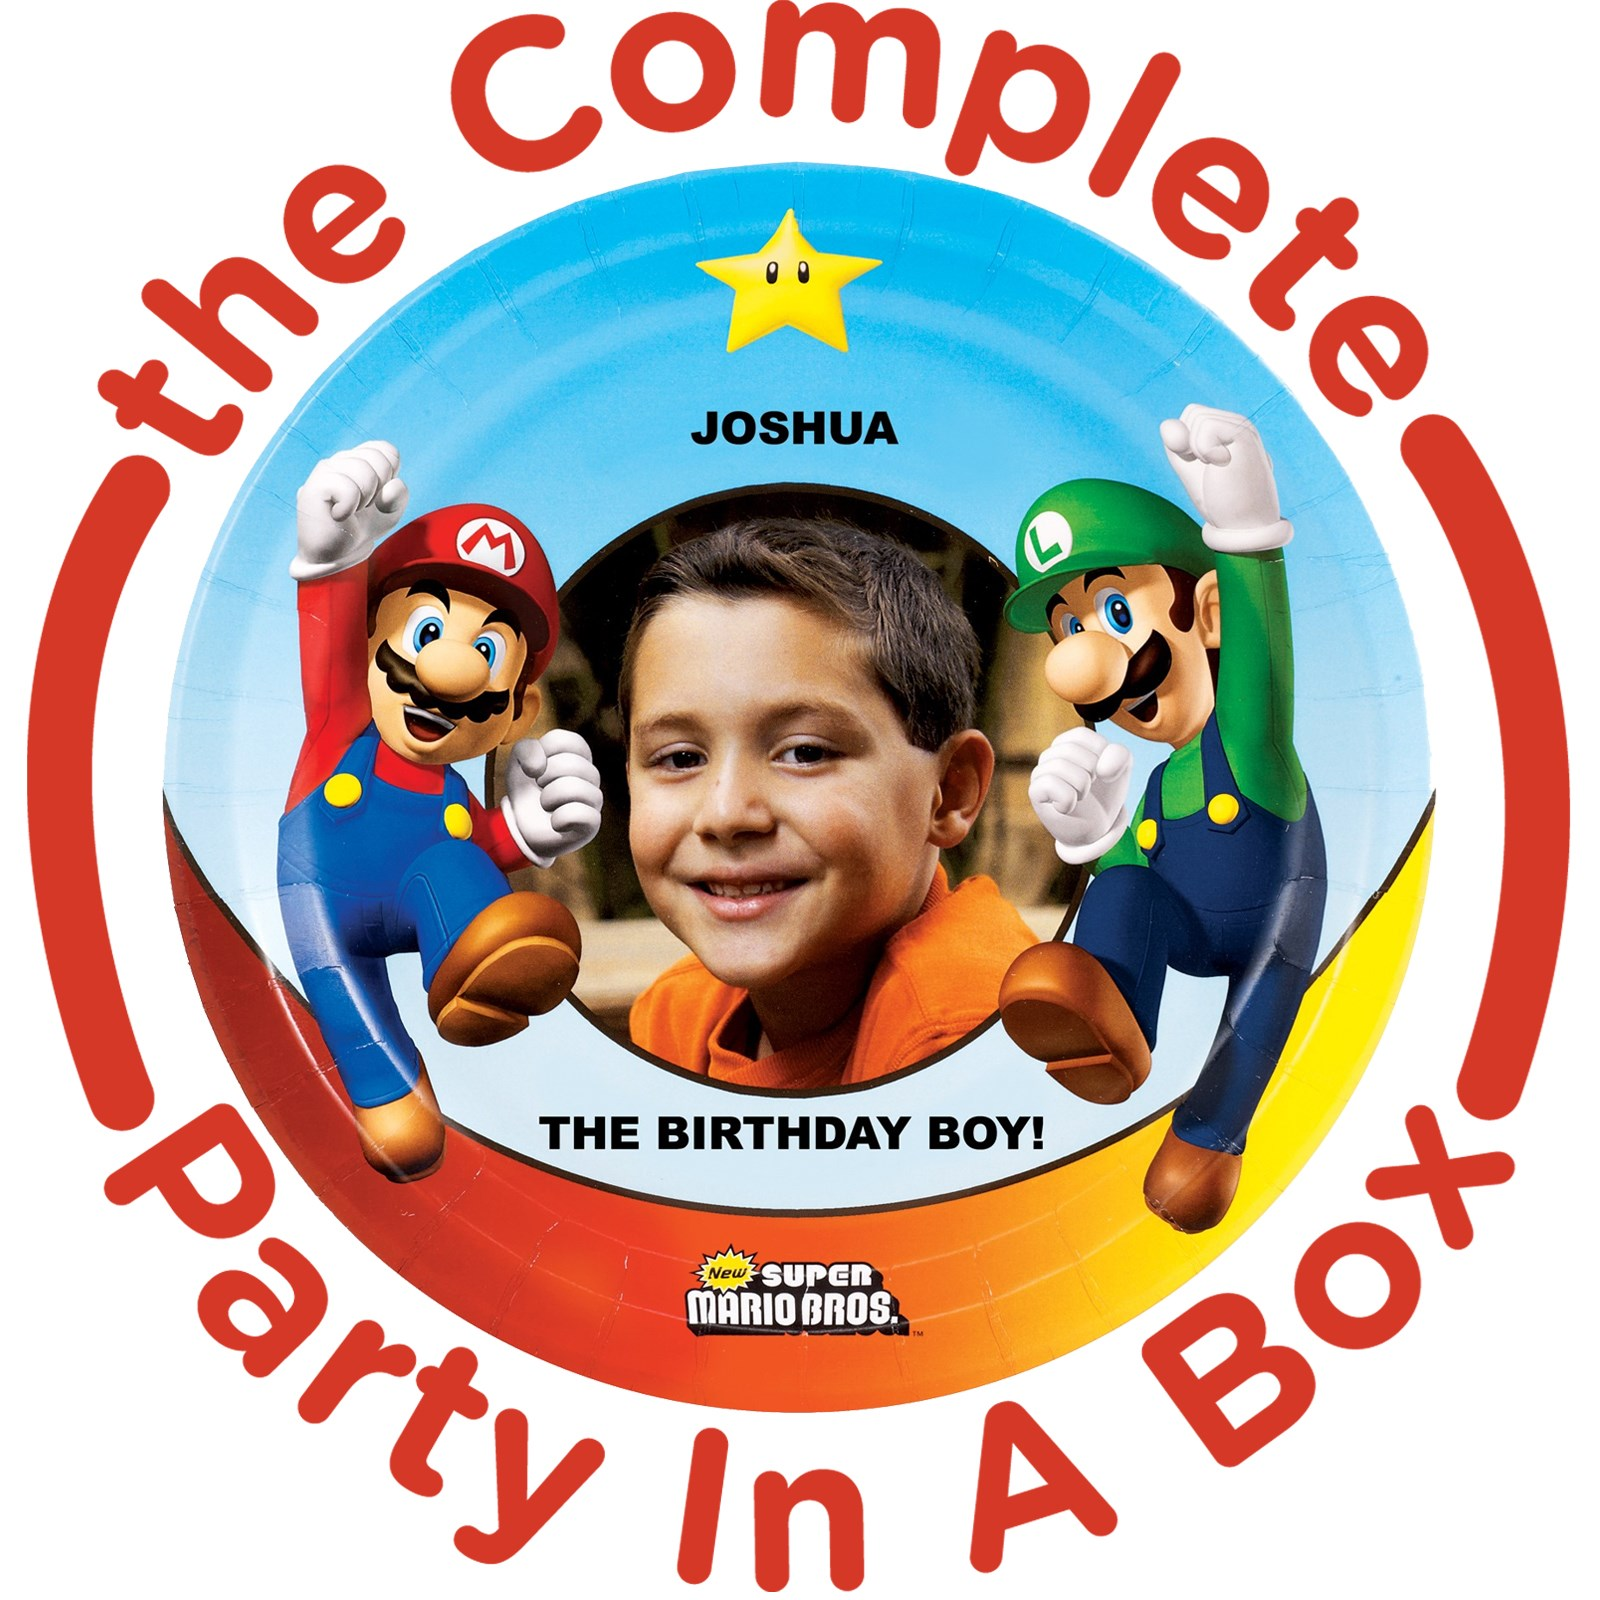 Super Mario Bros. Personalized Party in a Box - Deluxe with Favors - 8 Guests